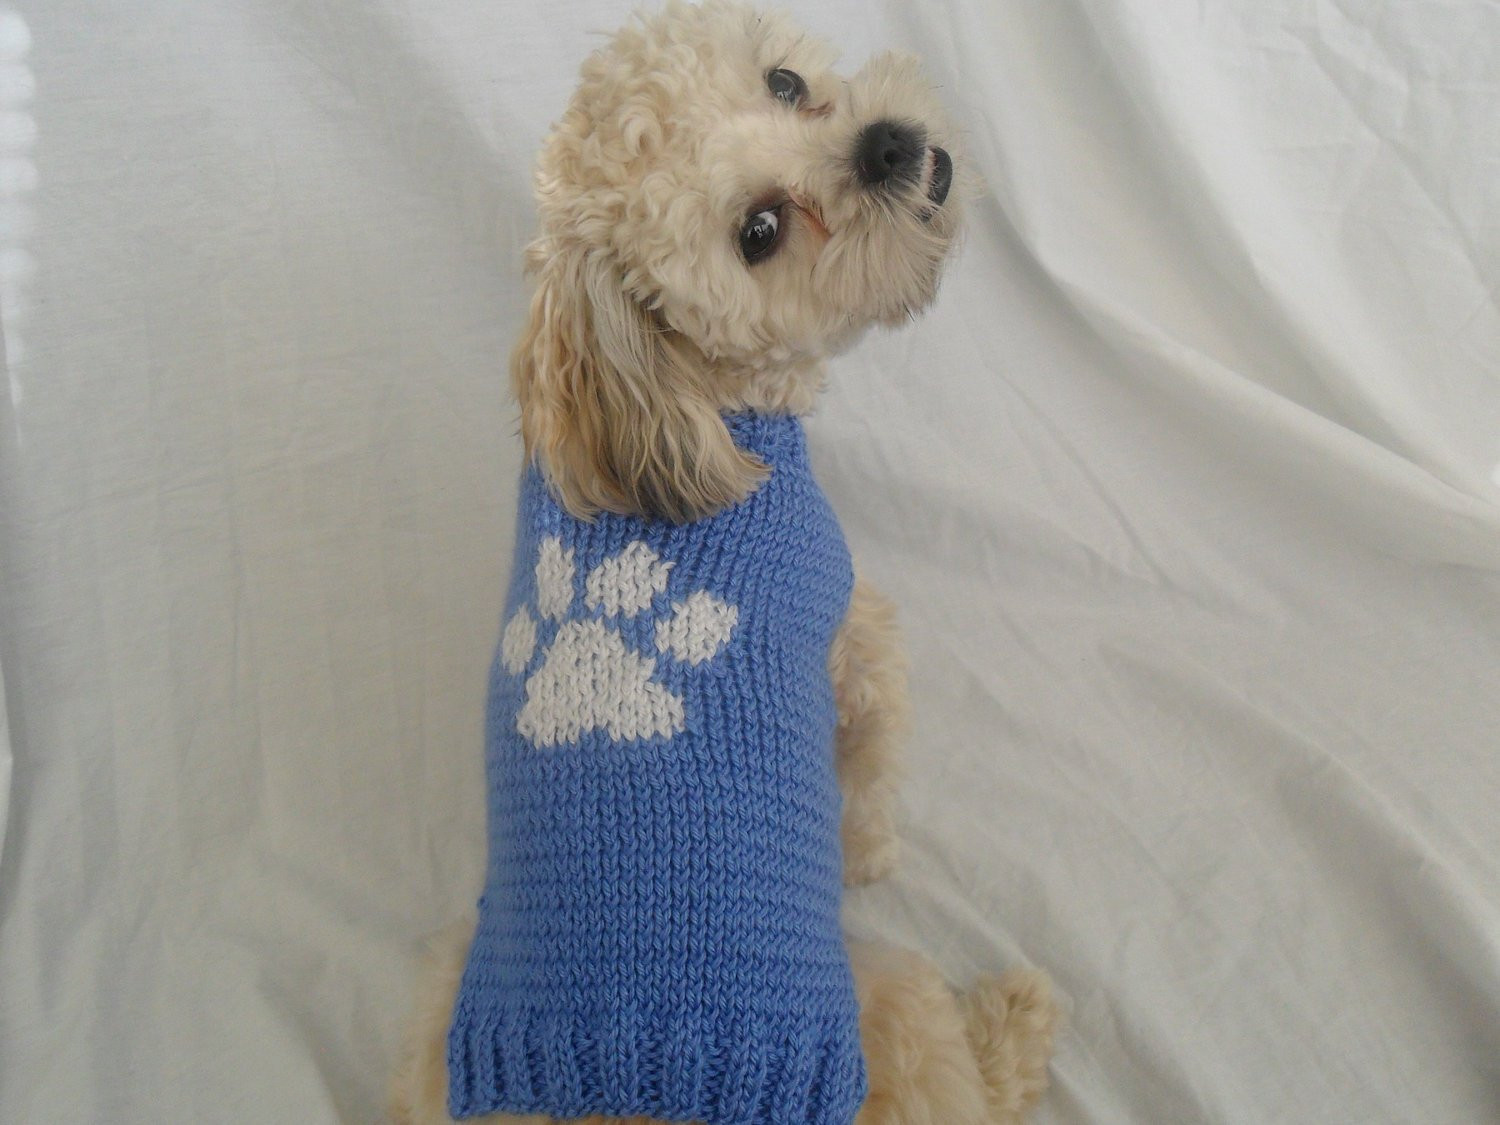 Fresh Hand Knit Blue Dog Sweater with Paw Print for Small Dogs Knitting Patterns for Dog Sweaters for Beginners Of Luxury 41 Pictures Knitting Patterns for Dog Sweaters for Beginners